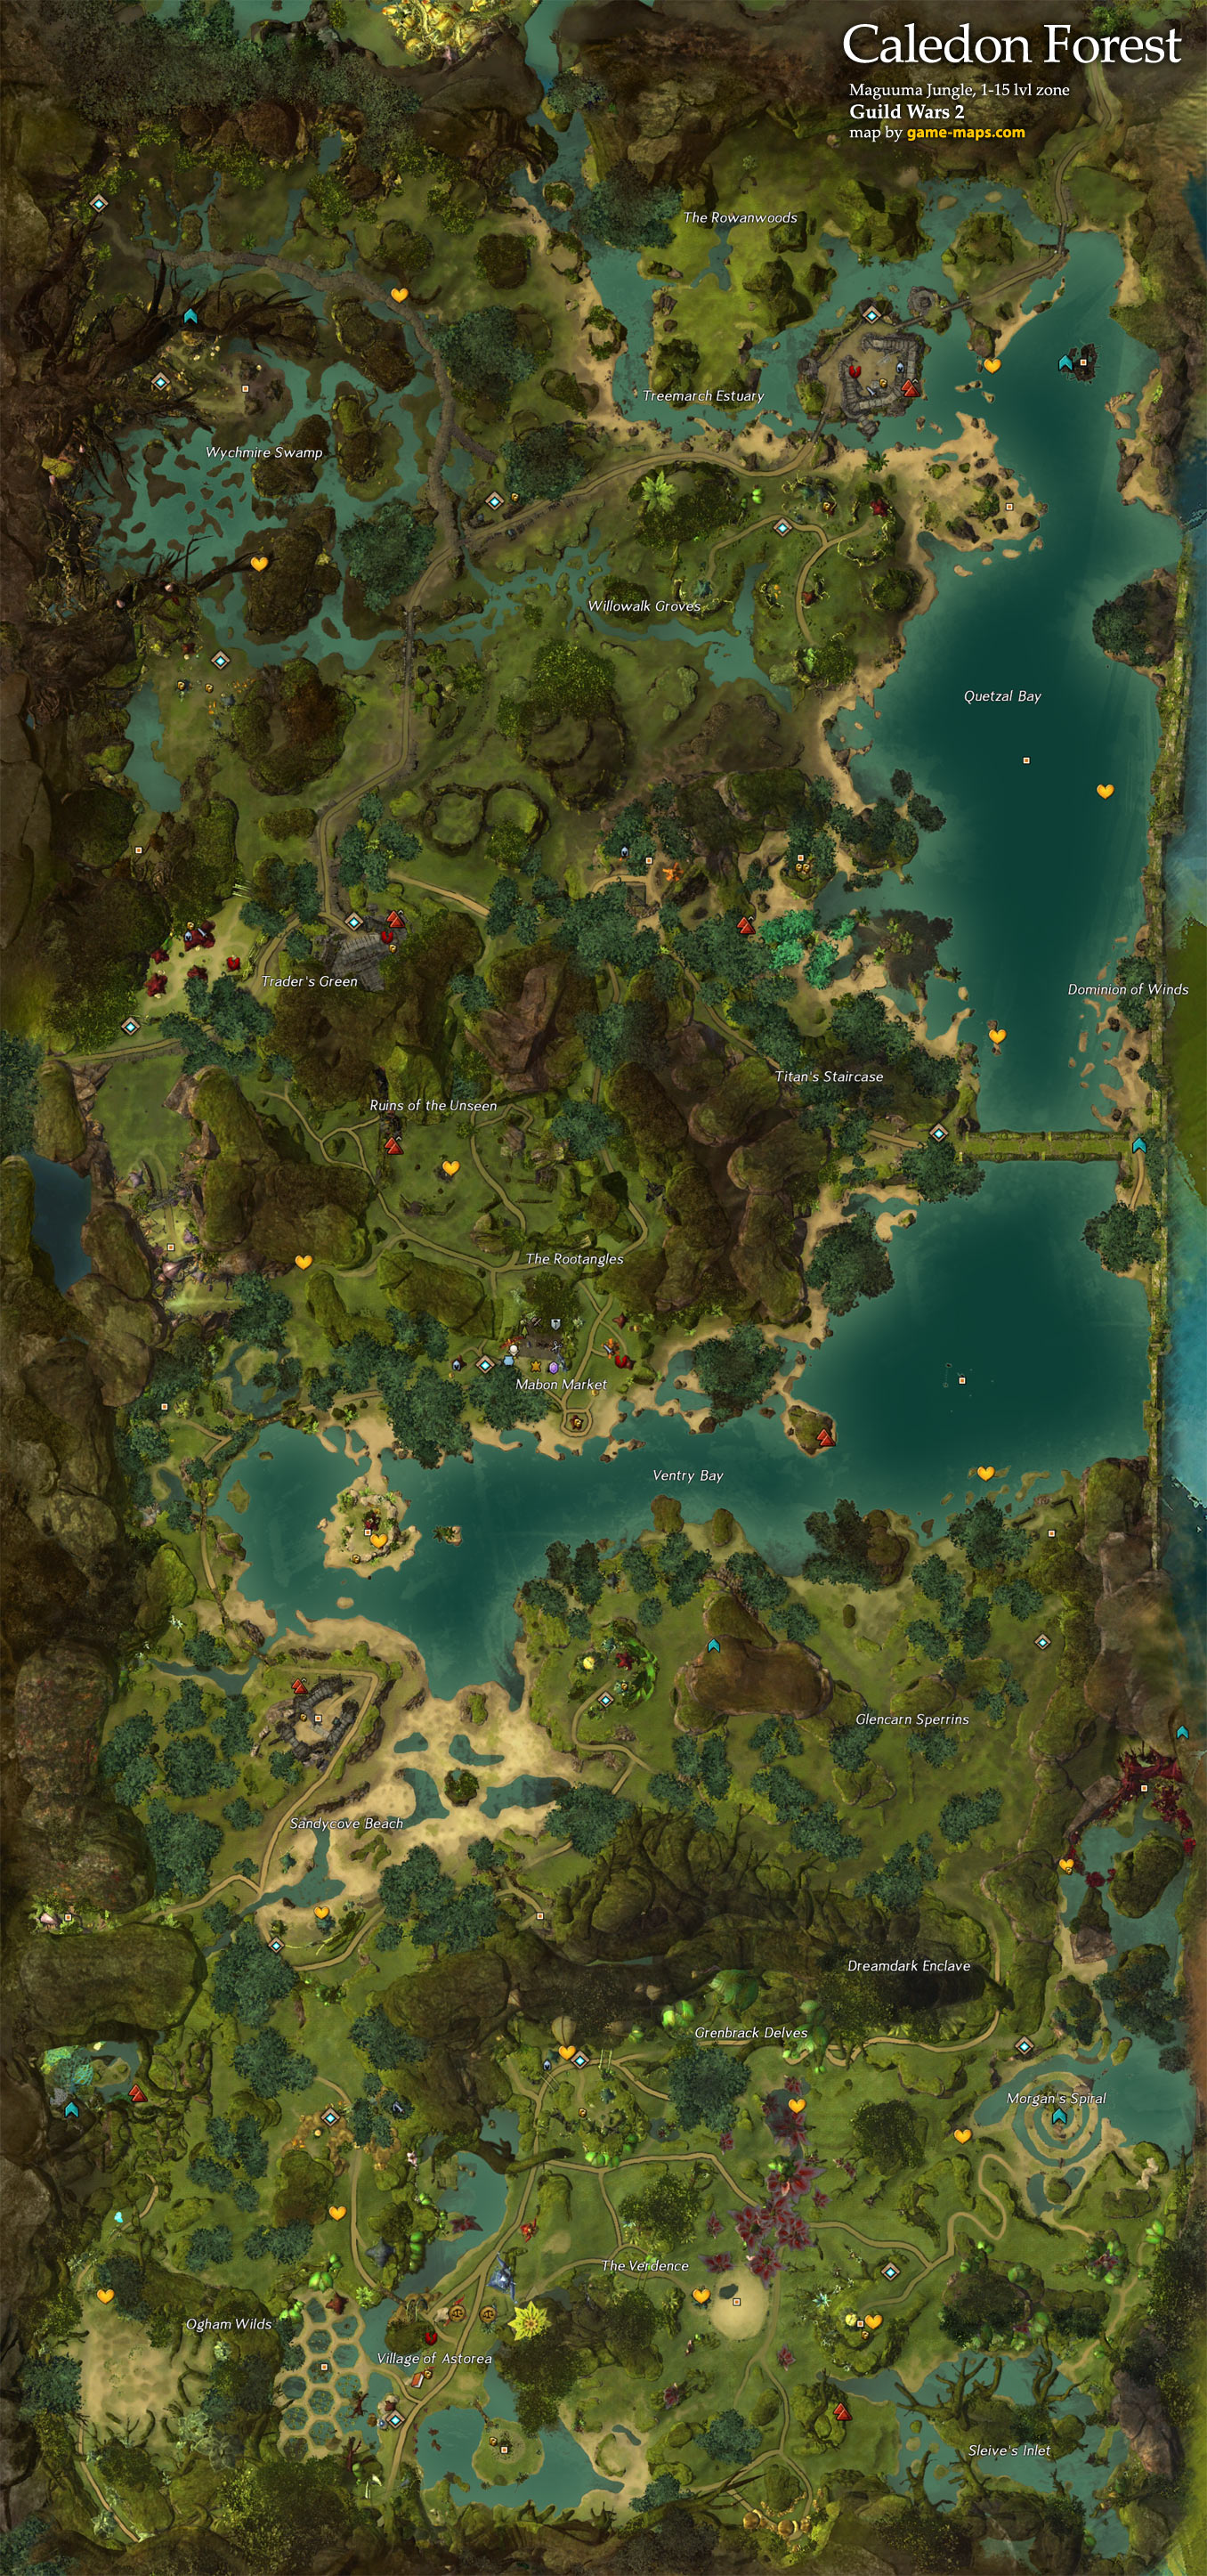 Caledon Forest Map Caledon Forest Map   Guild Wars 2 | game maps.com